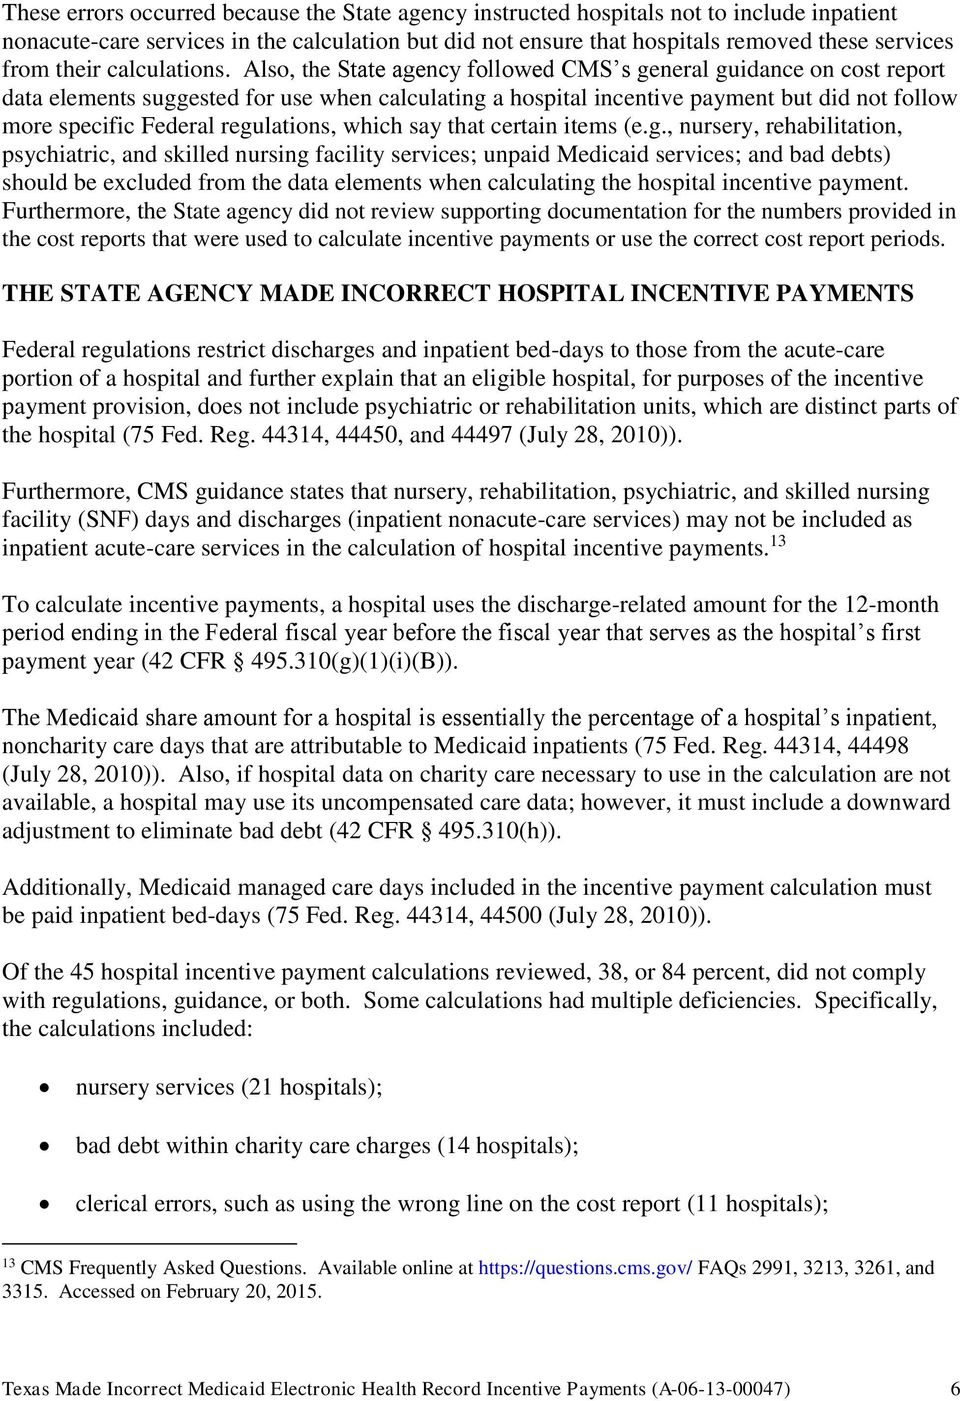 Also, the State agency followed CMS s general guidance on cost report data elements suggested for use when calculating a hospital incentive payment but did not follow more specific Federal